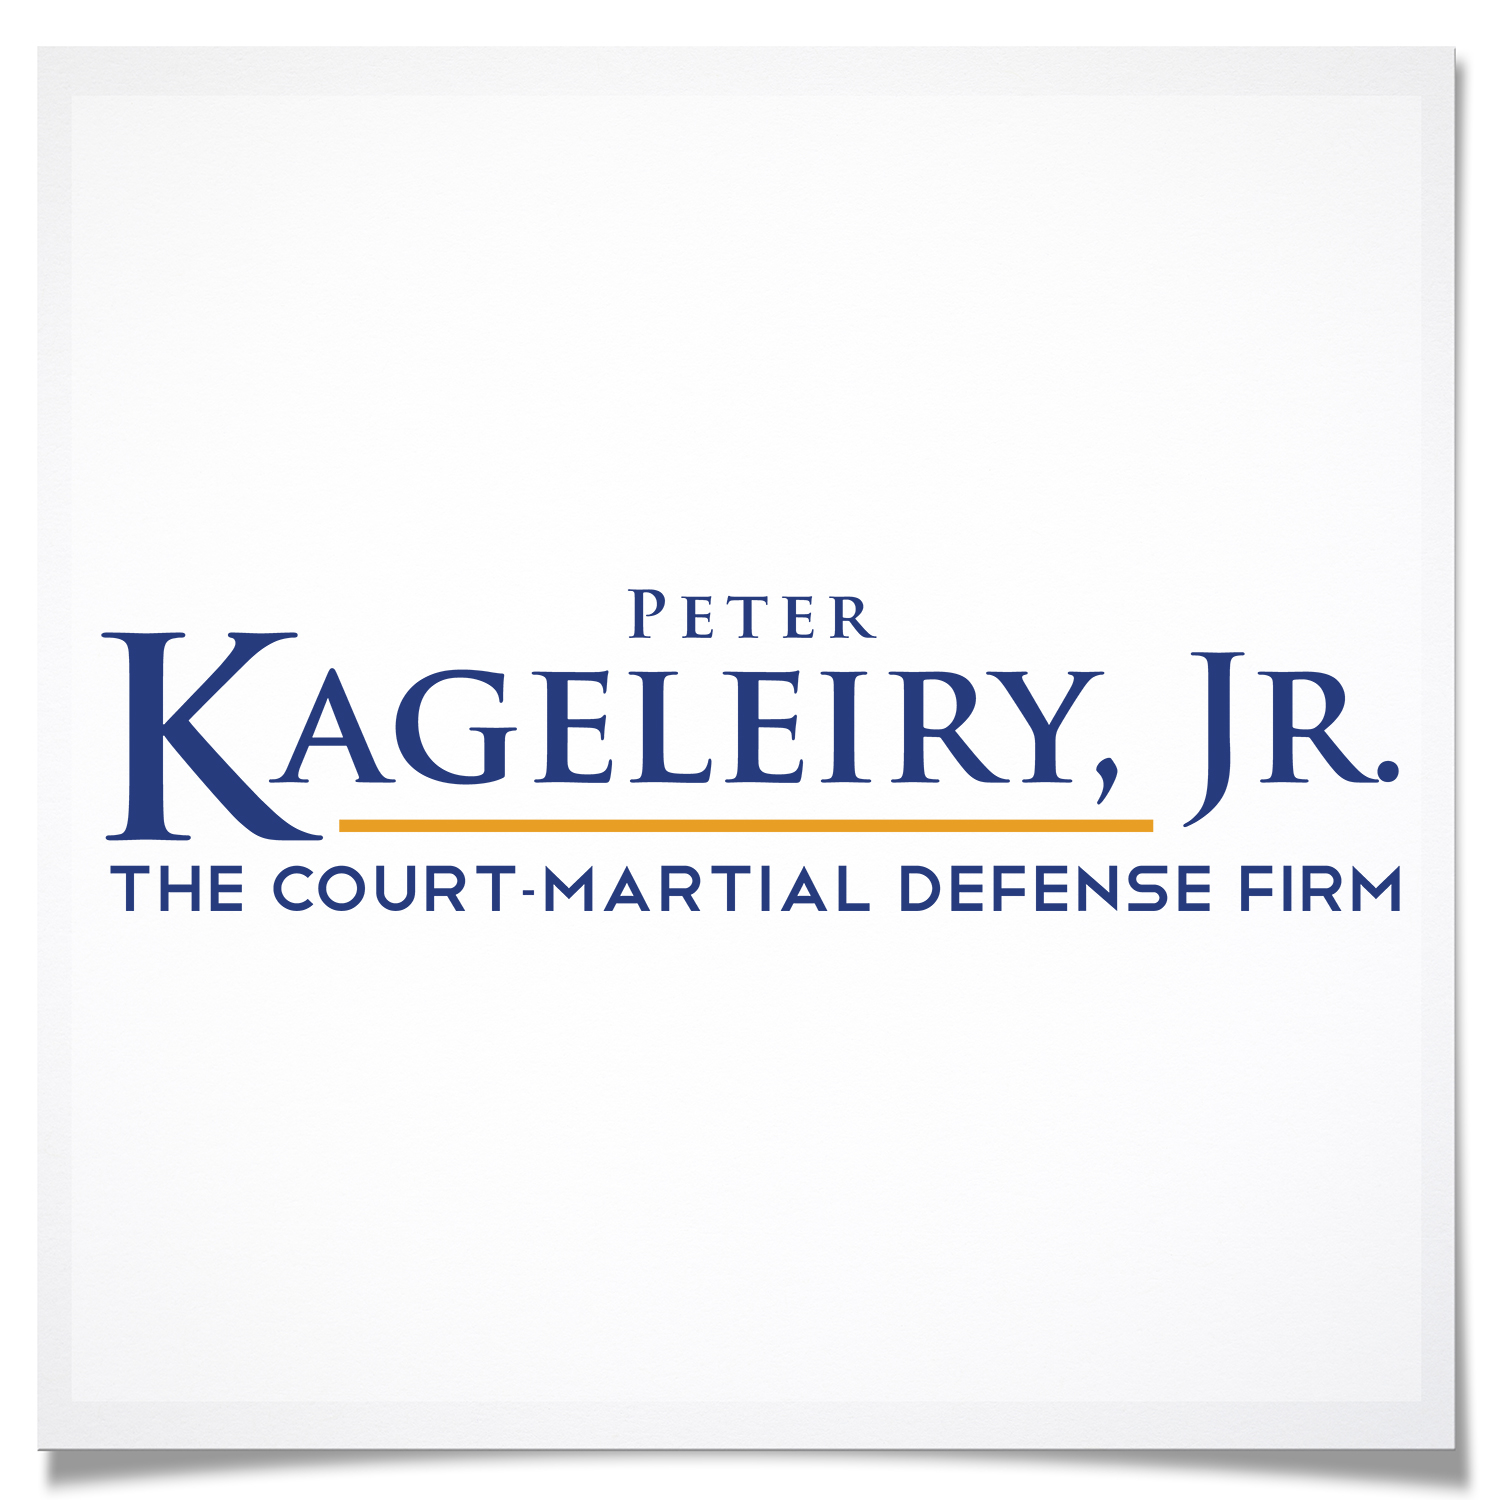 Law Office of Peter Kageleiry, Jr.